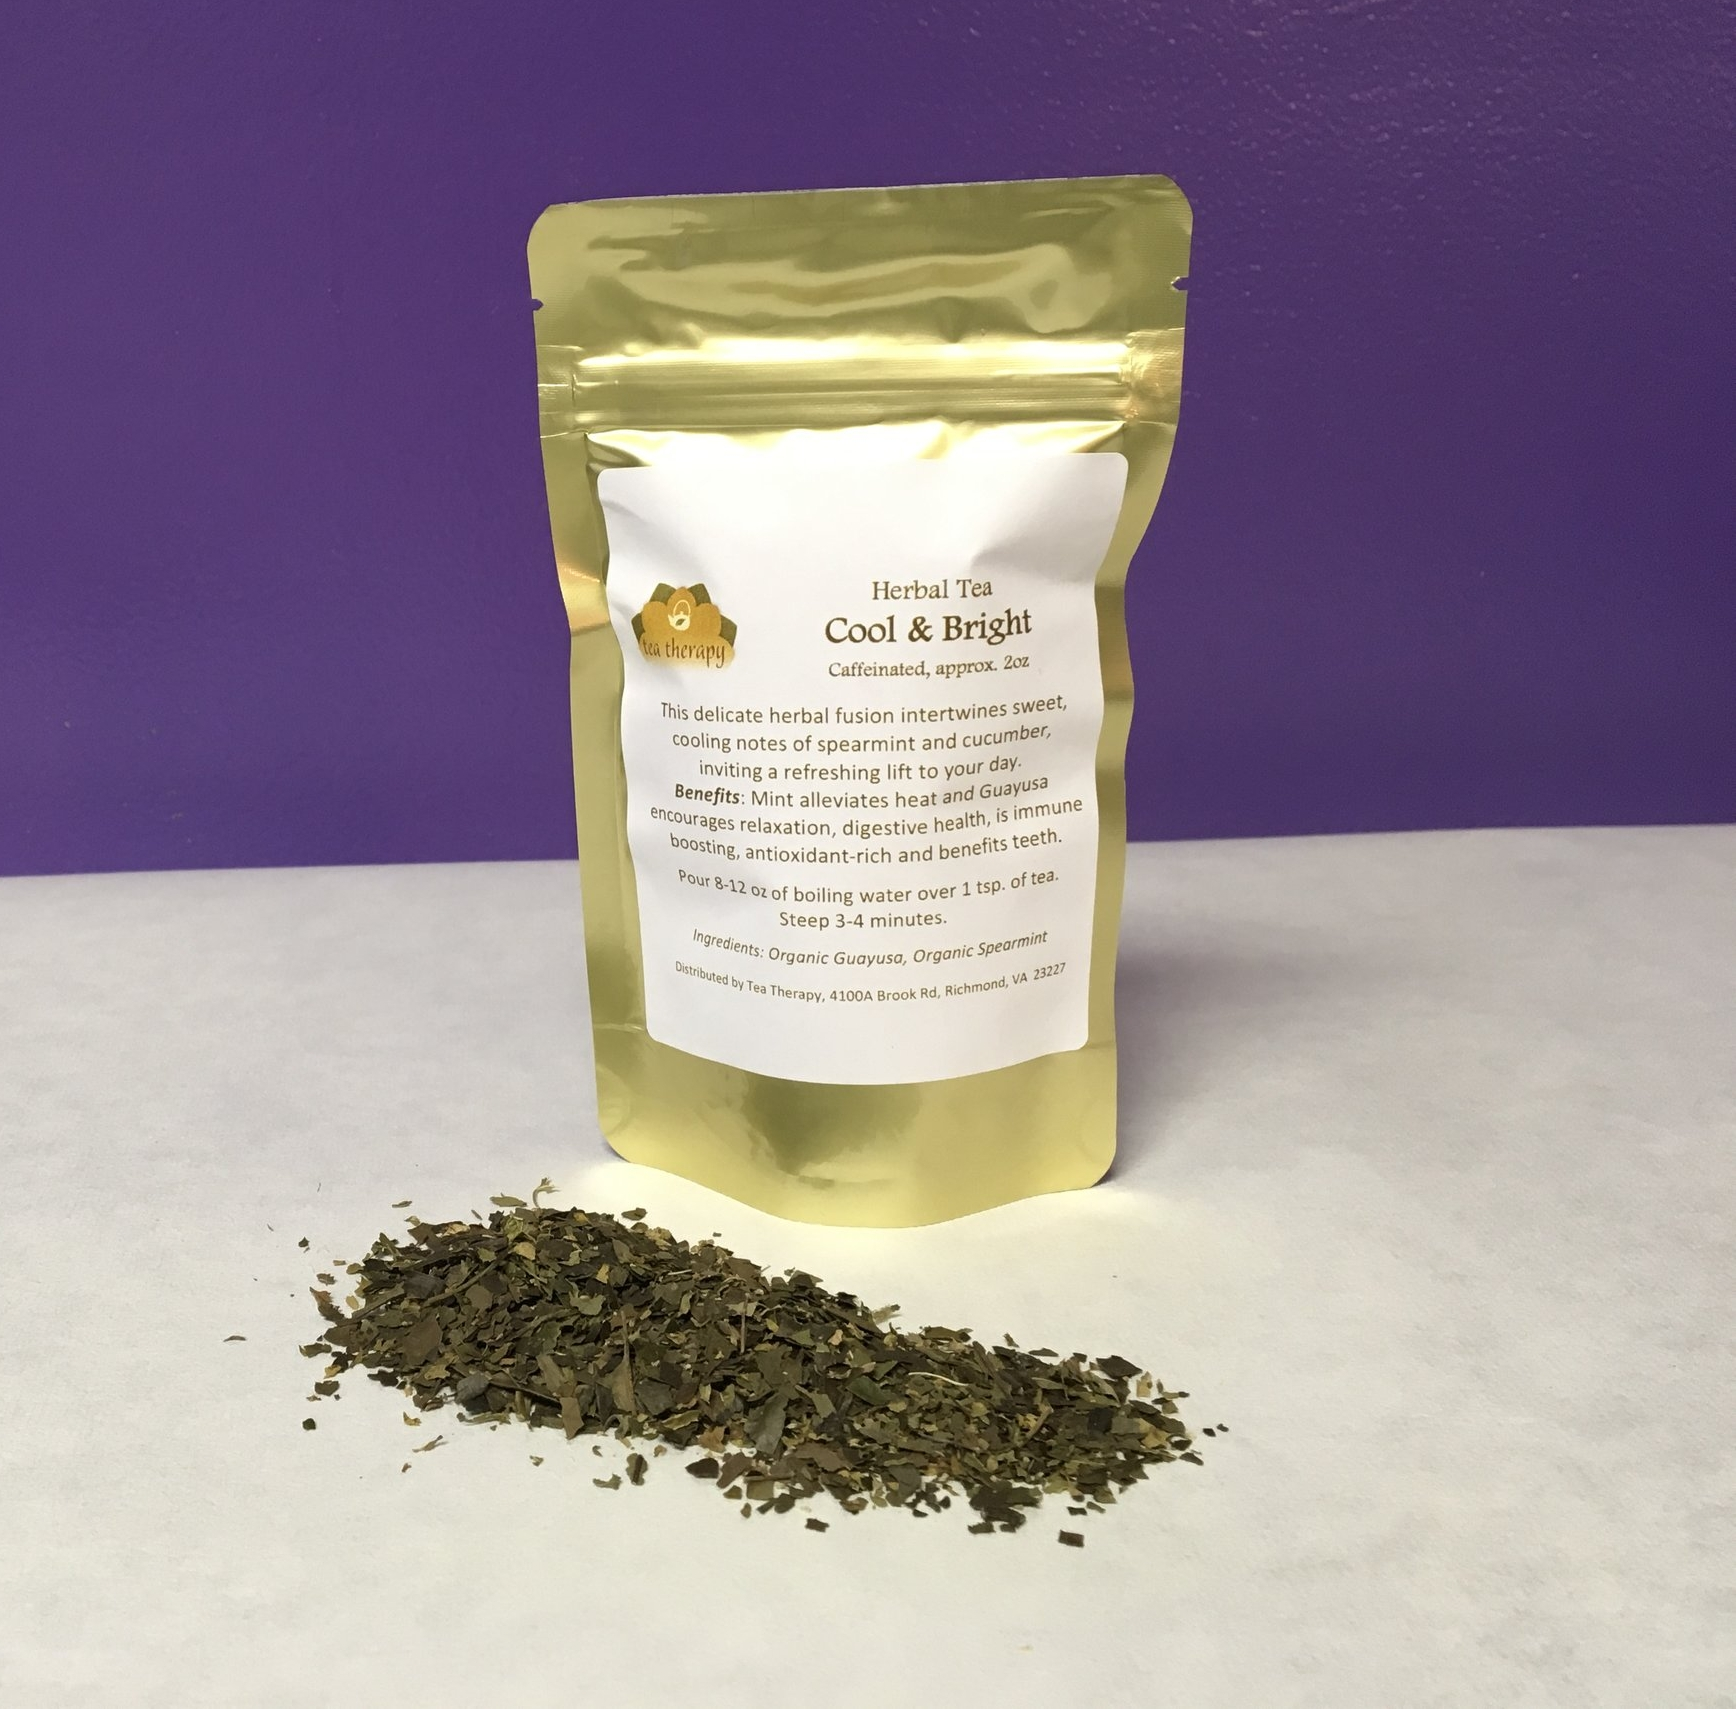 Cool & Bright - Herbal tea – caffeinated - This delicate herbal fusion intertwines sweet, cooling notes of spearmint and cucumber, inviting a refreshing lift to your day.